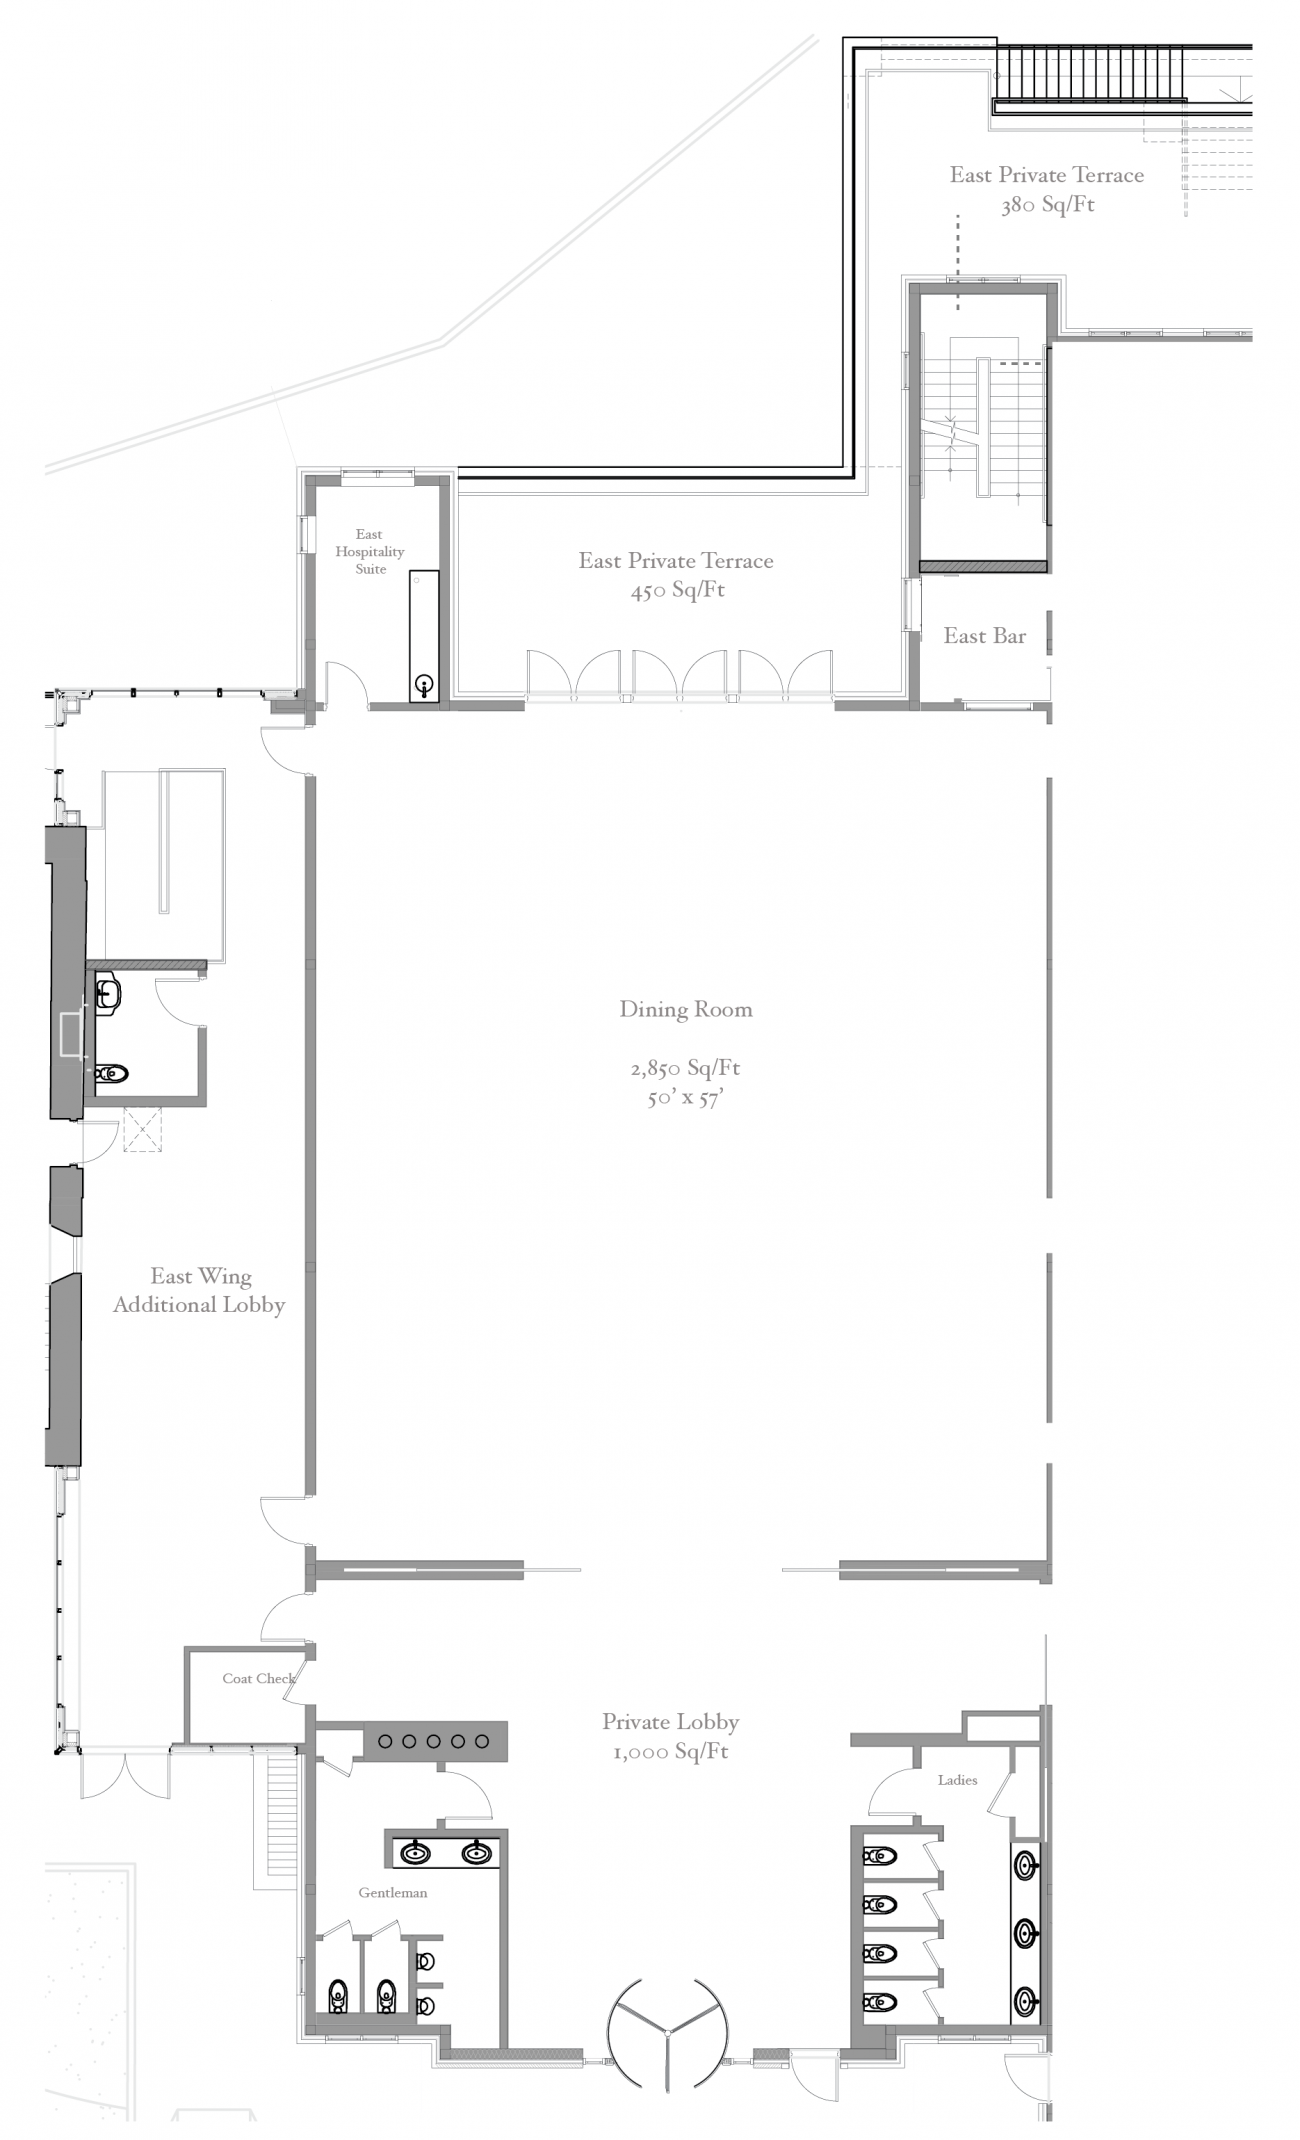 Floorplan of the East wing